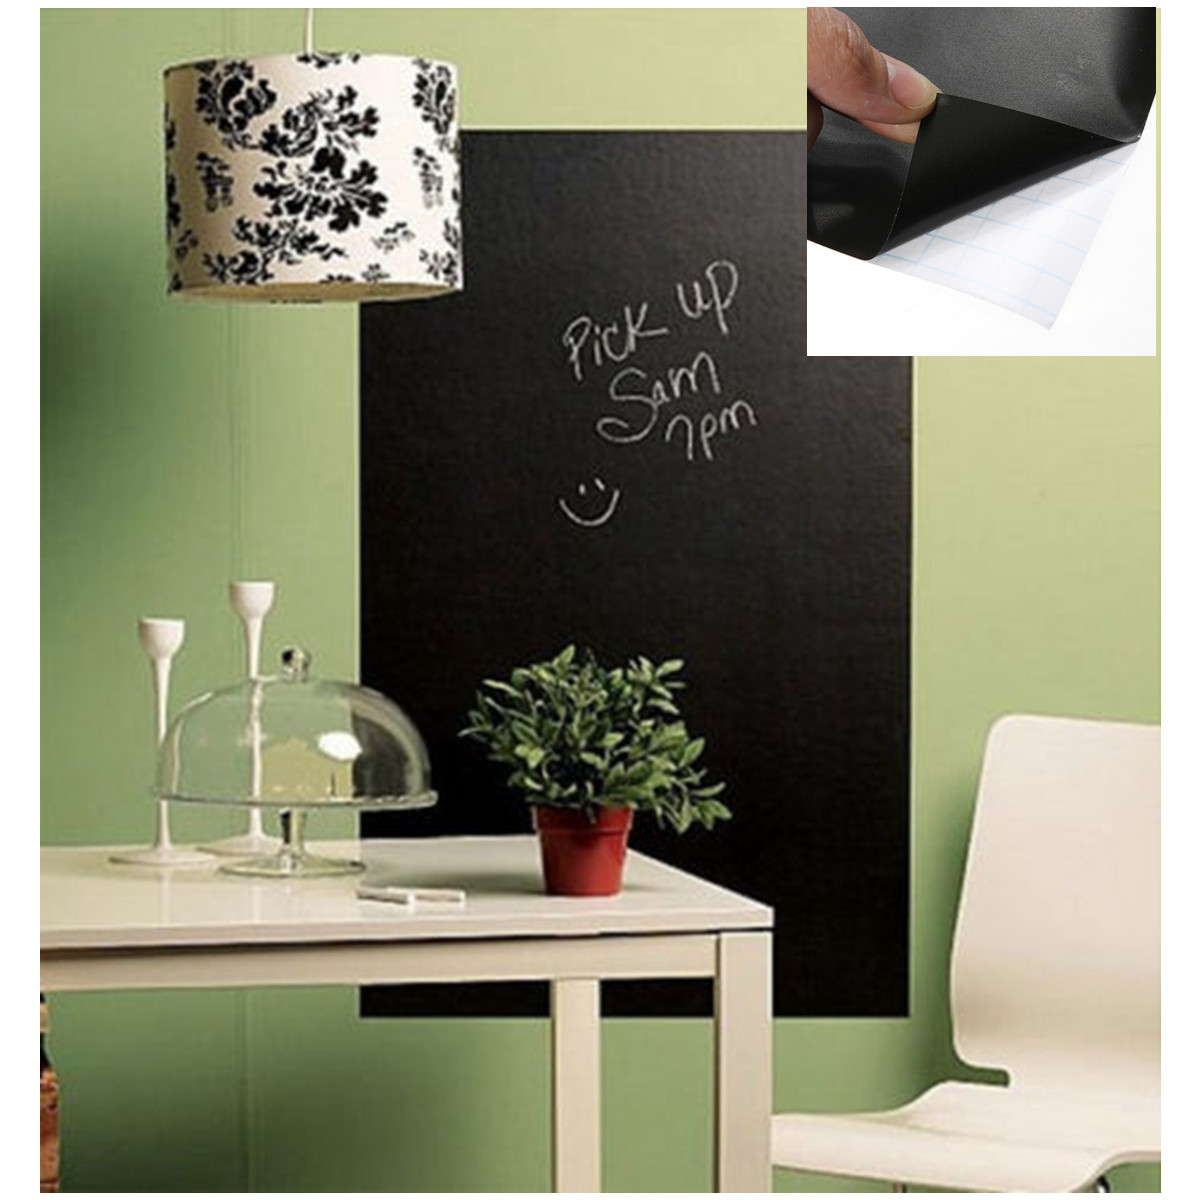 sticker autocollant mural tableau noir ardoise mur avec 4pcs craies 45 200 ebay. Black Bedroom Furniture Sets. Home Design Ideas